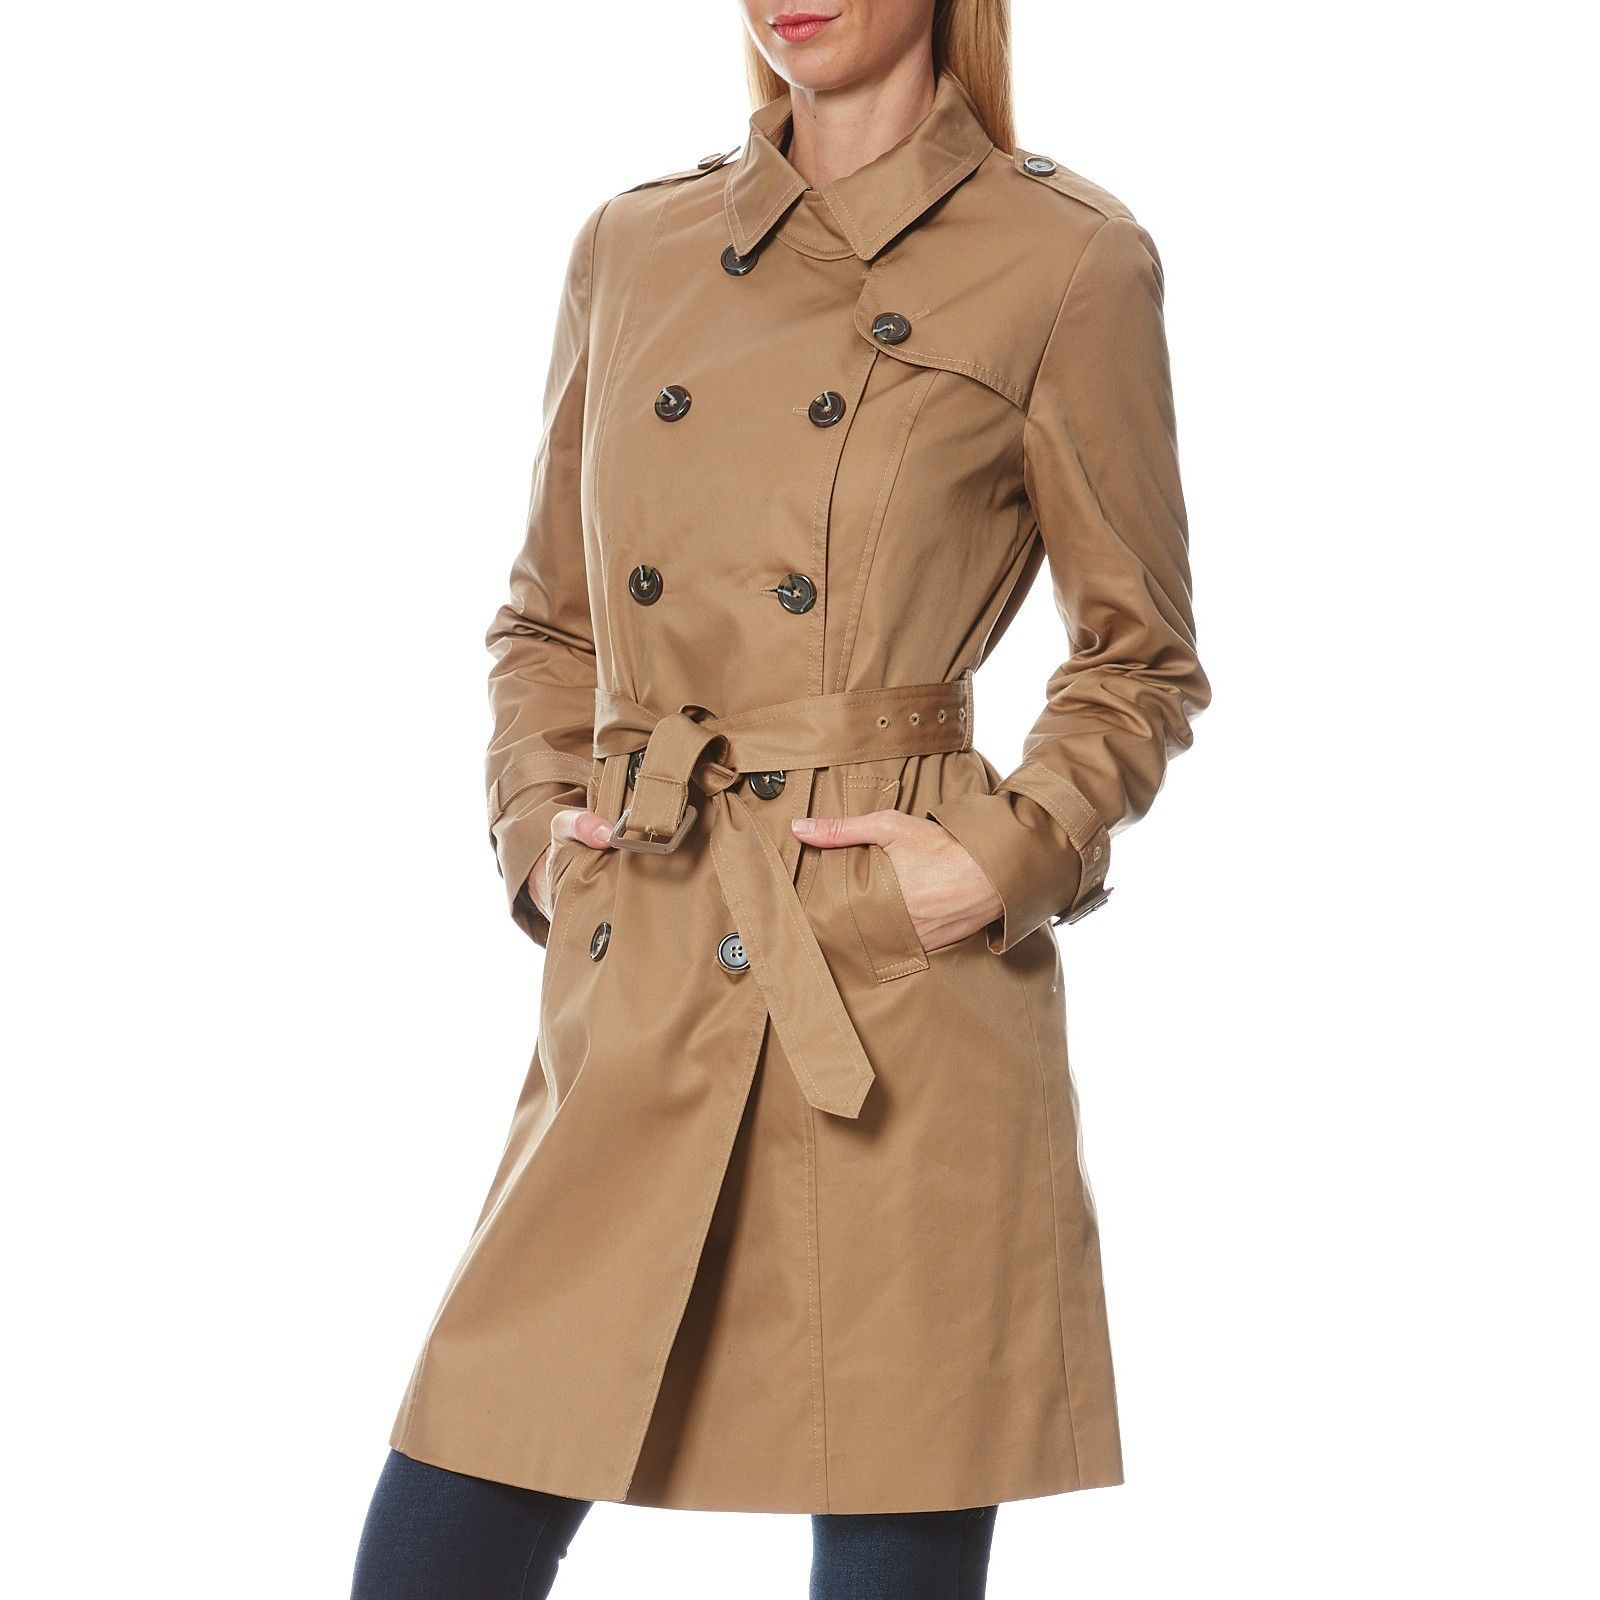 Souvent Caroll Phoenix - Trench - camel   Brandalley JH87 9214ceed0c3